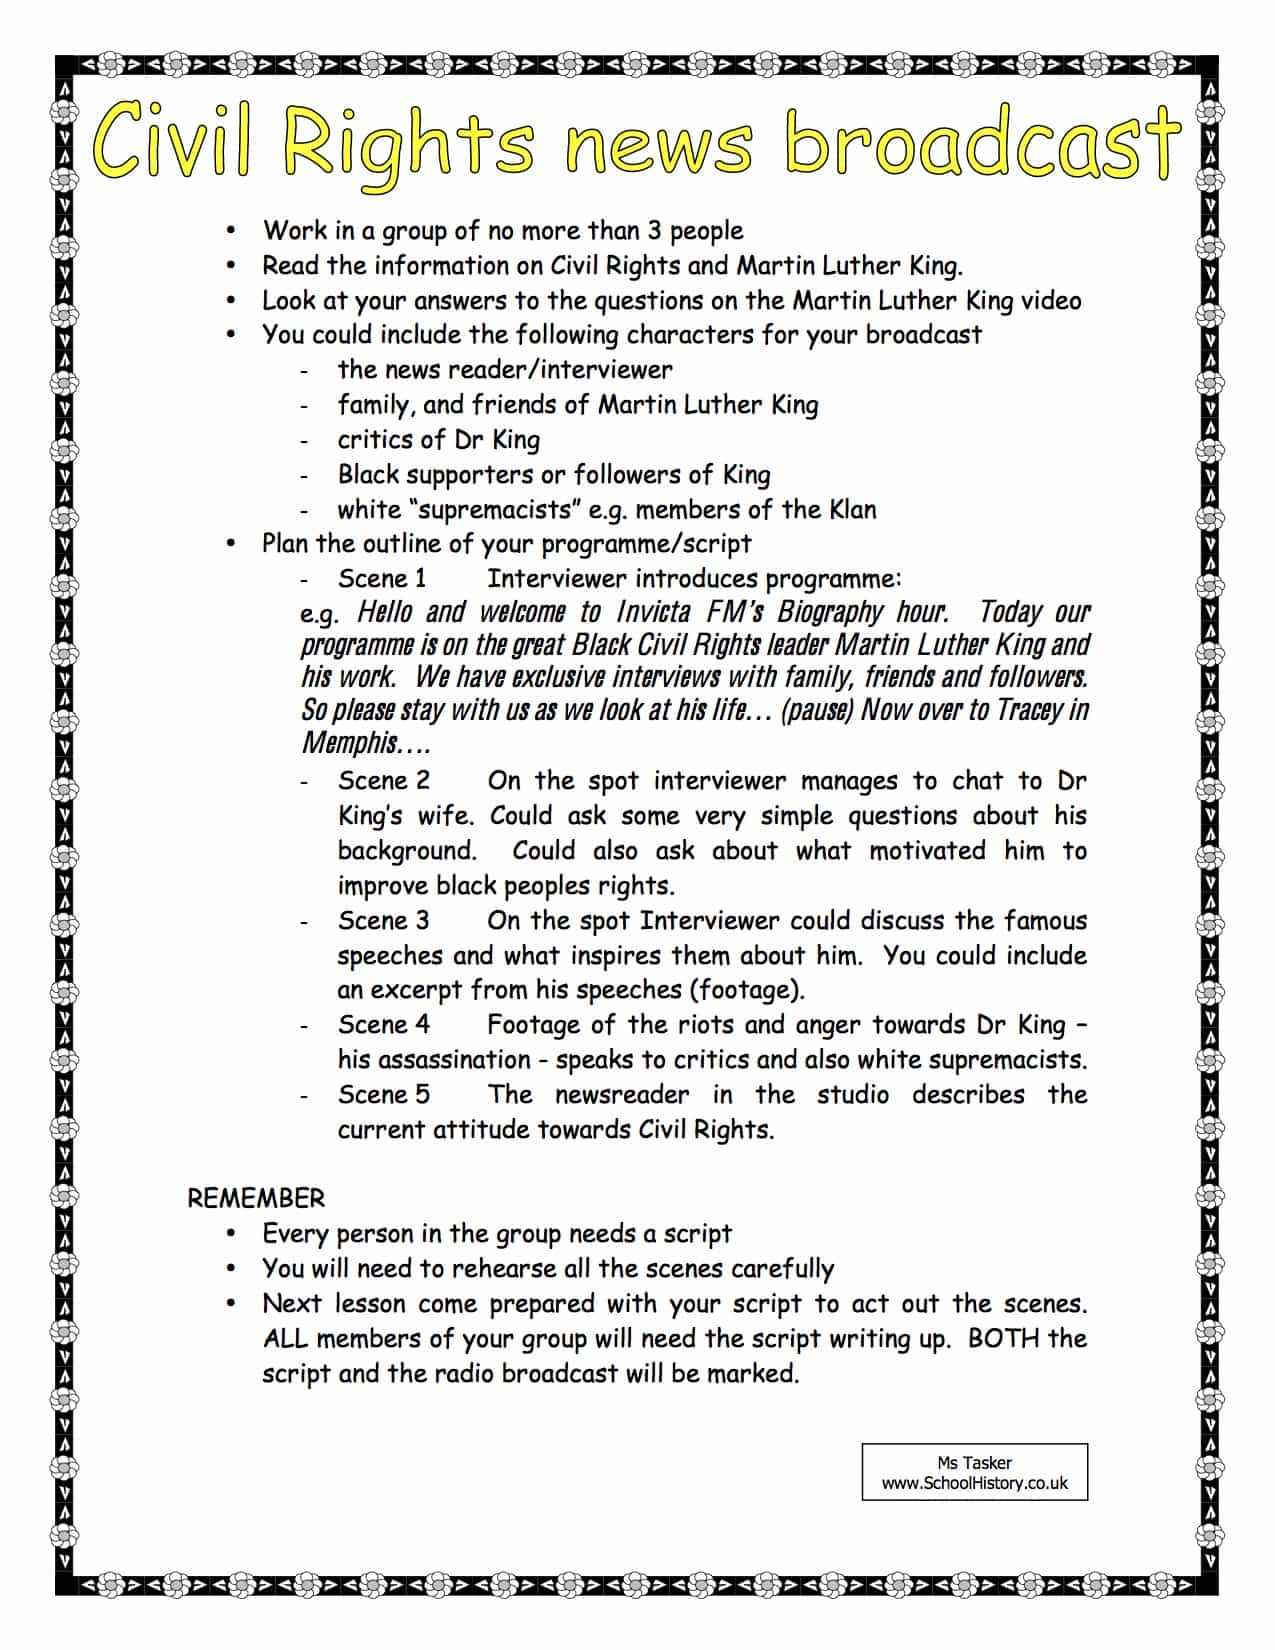 The Civil Rights News Broadcast Activity Worksheet